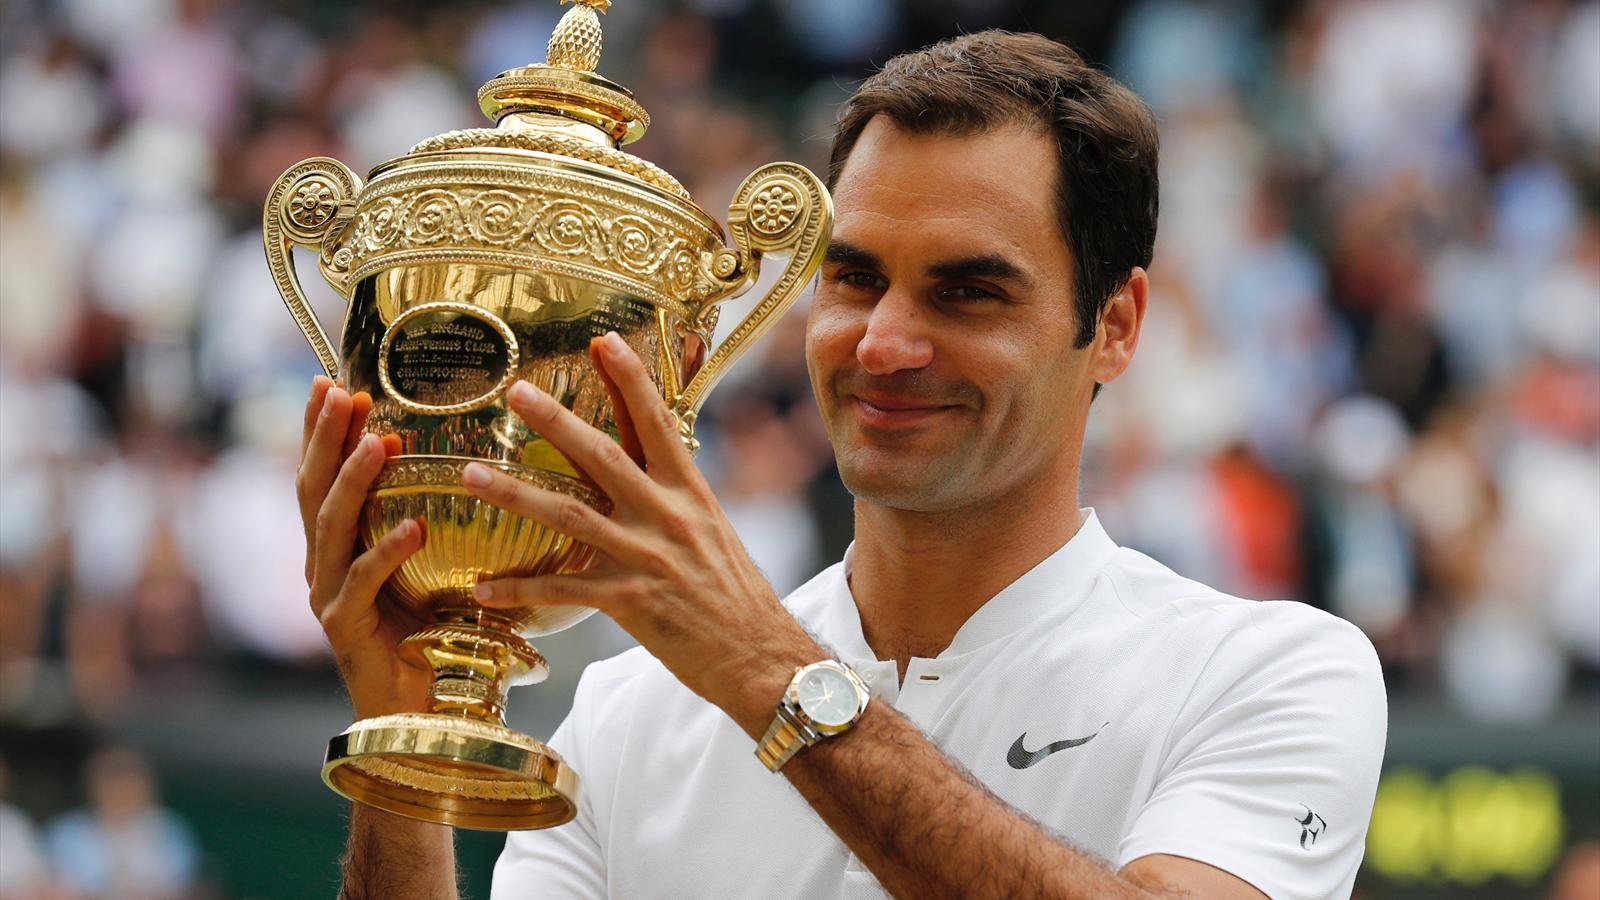 Record-breaking Roger Federer claims eighth Wimbledon title with crushing win over Marin Cilic ...